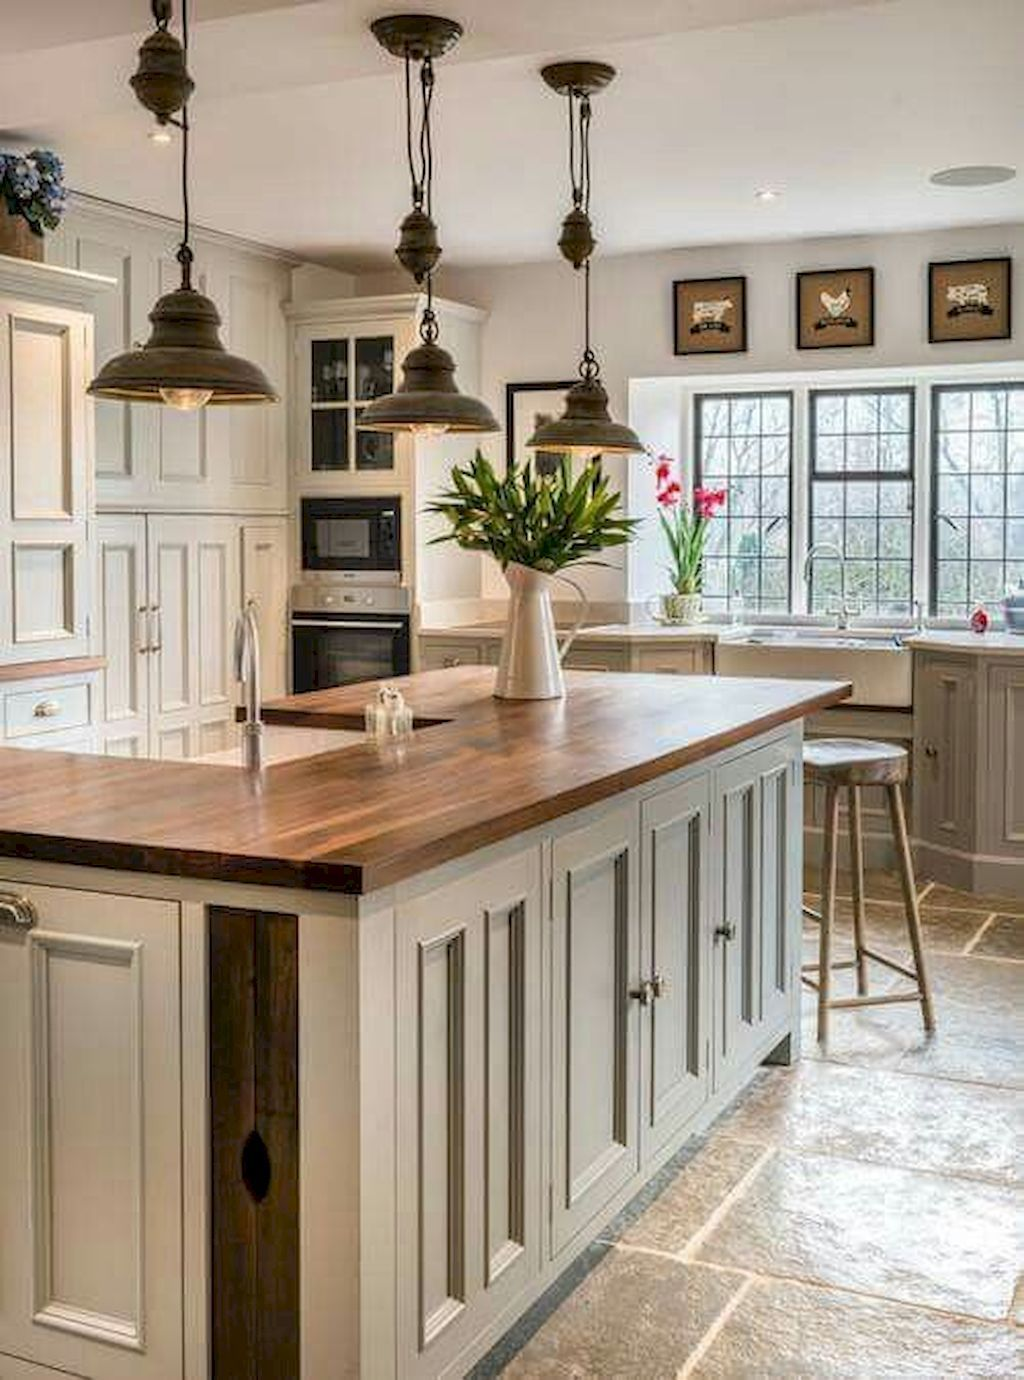 Nice 40 Rustic Modern Farmhouse Kitchen Design Ideas Https Lovelyving Com 2017 09 06 Rustic Farmhouse Kitchen Farmhouse Style Kitchen Farmhouse Kitchen Decor